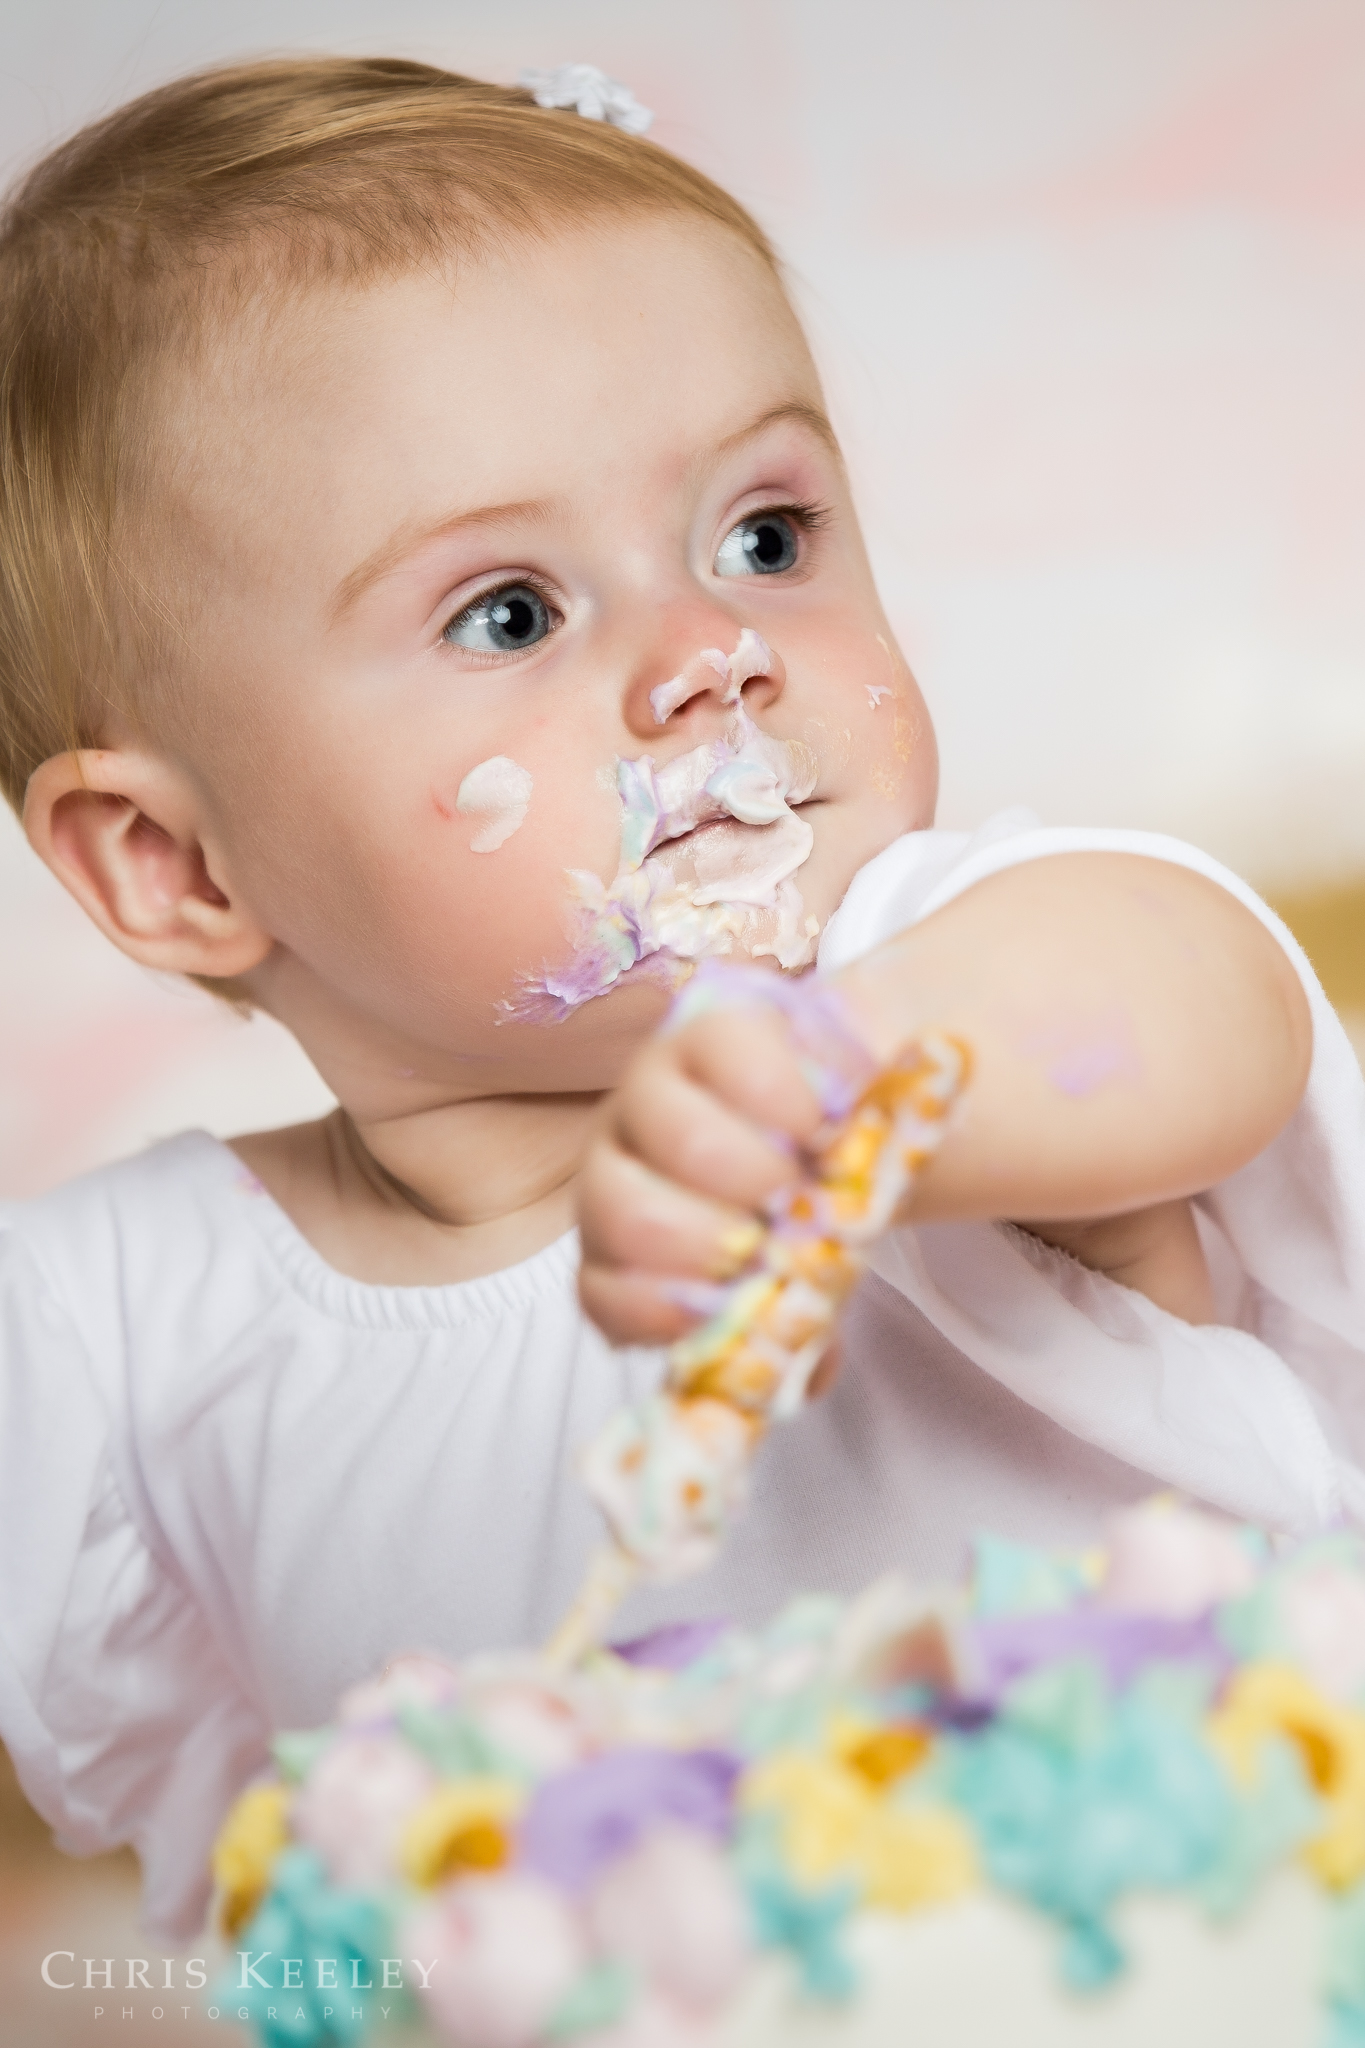 gwendolyn-one-year-cake-smash-dover-new-hampshire-photographer-06.jpg